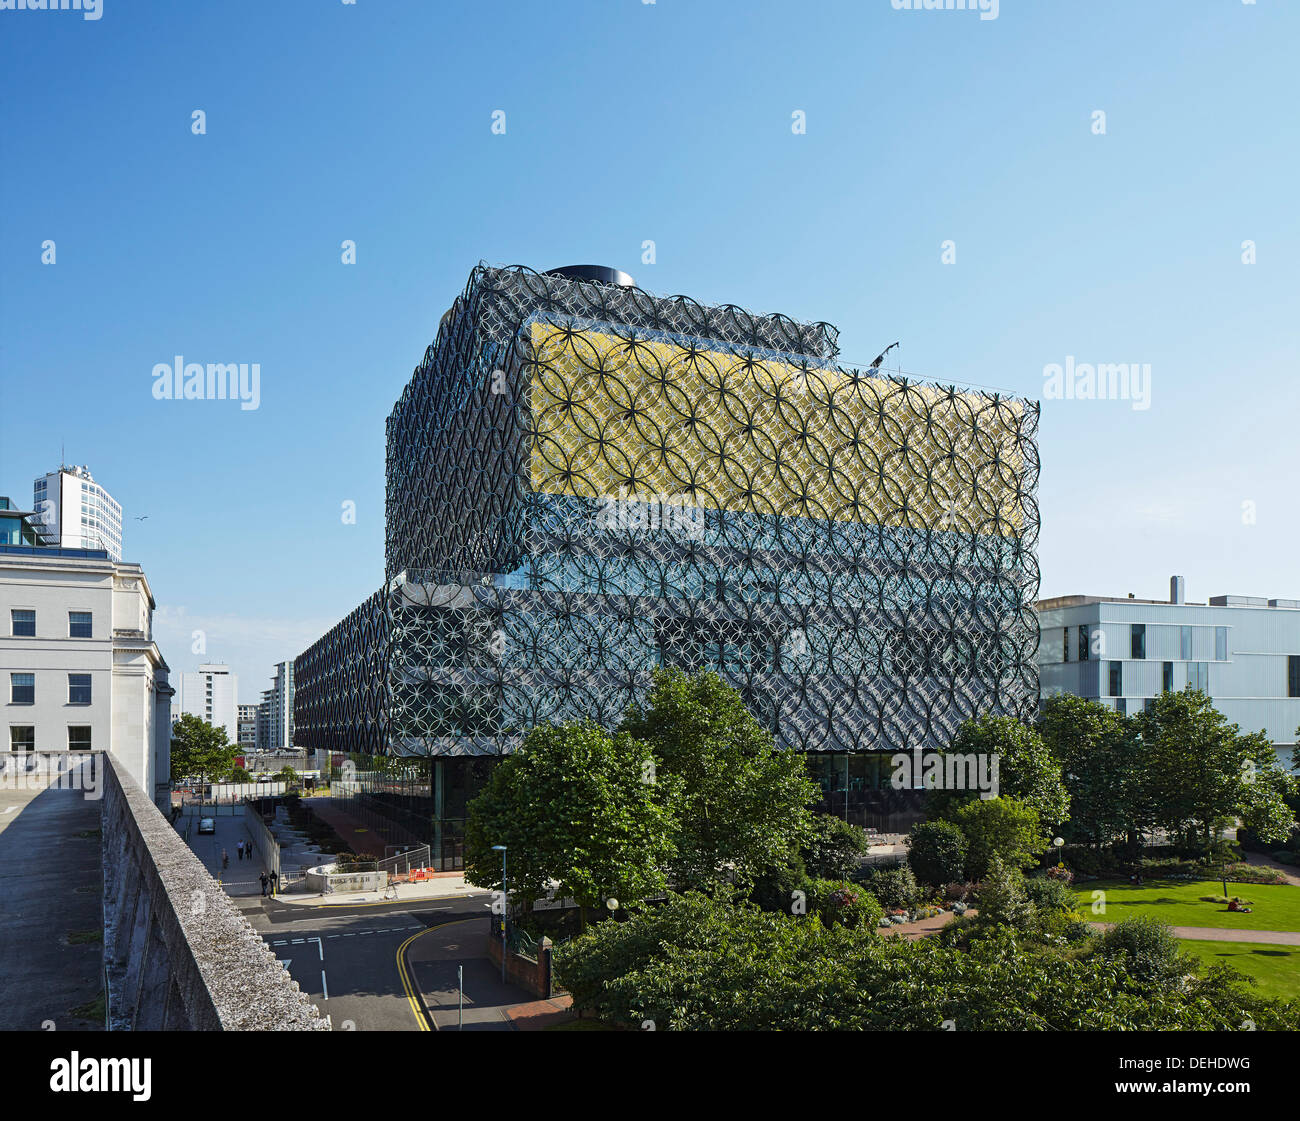 Birmingham United: Faca Stock Photos & Faca Stock Images